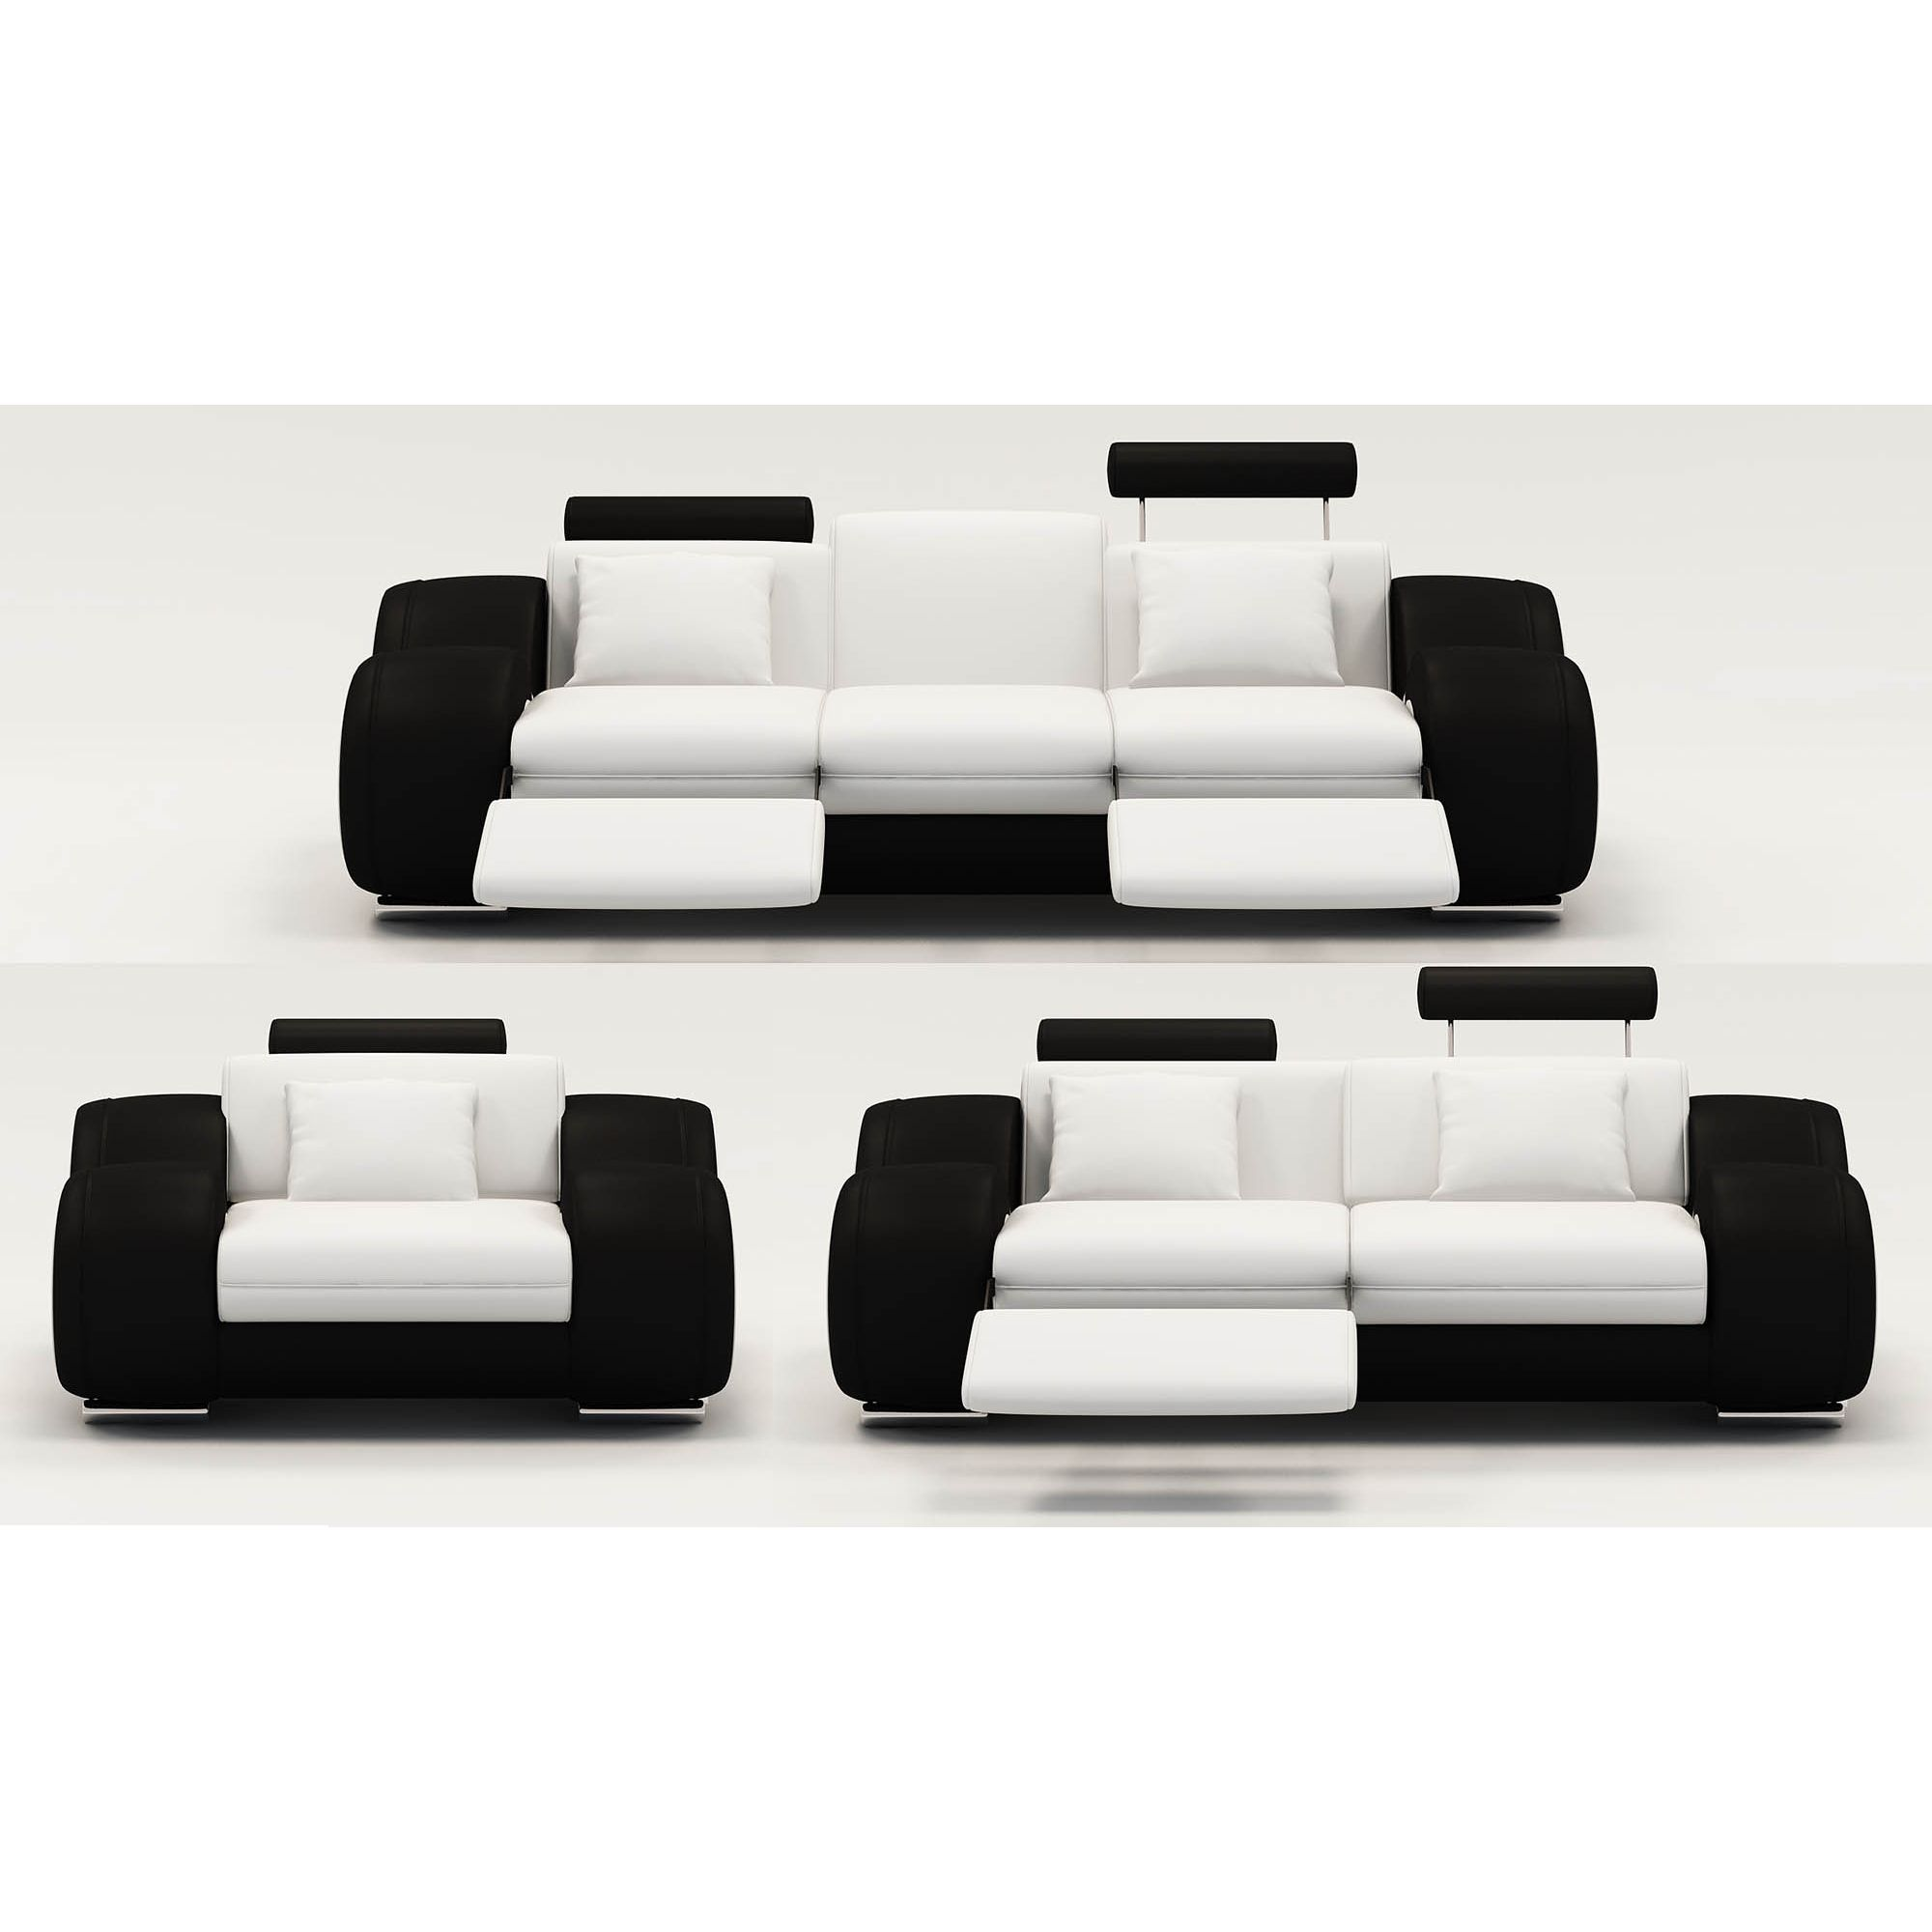 Deco in paris ensemble canape relax design 3 2 places - Canape design places ...